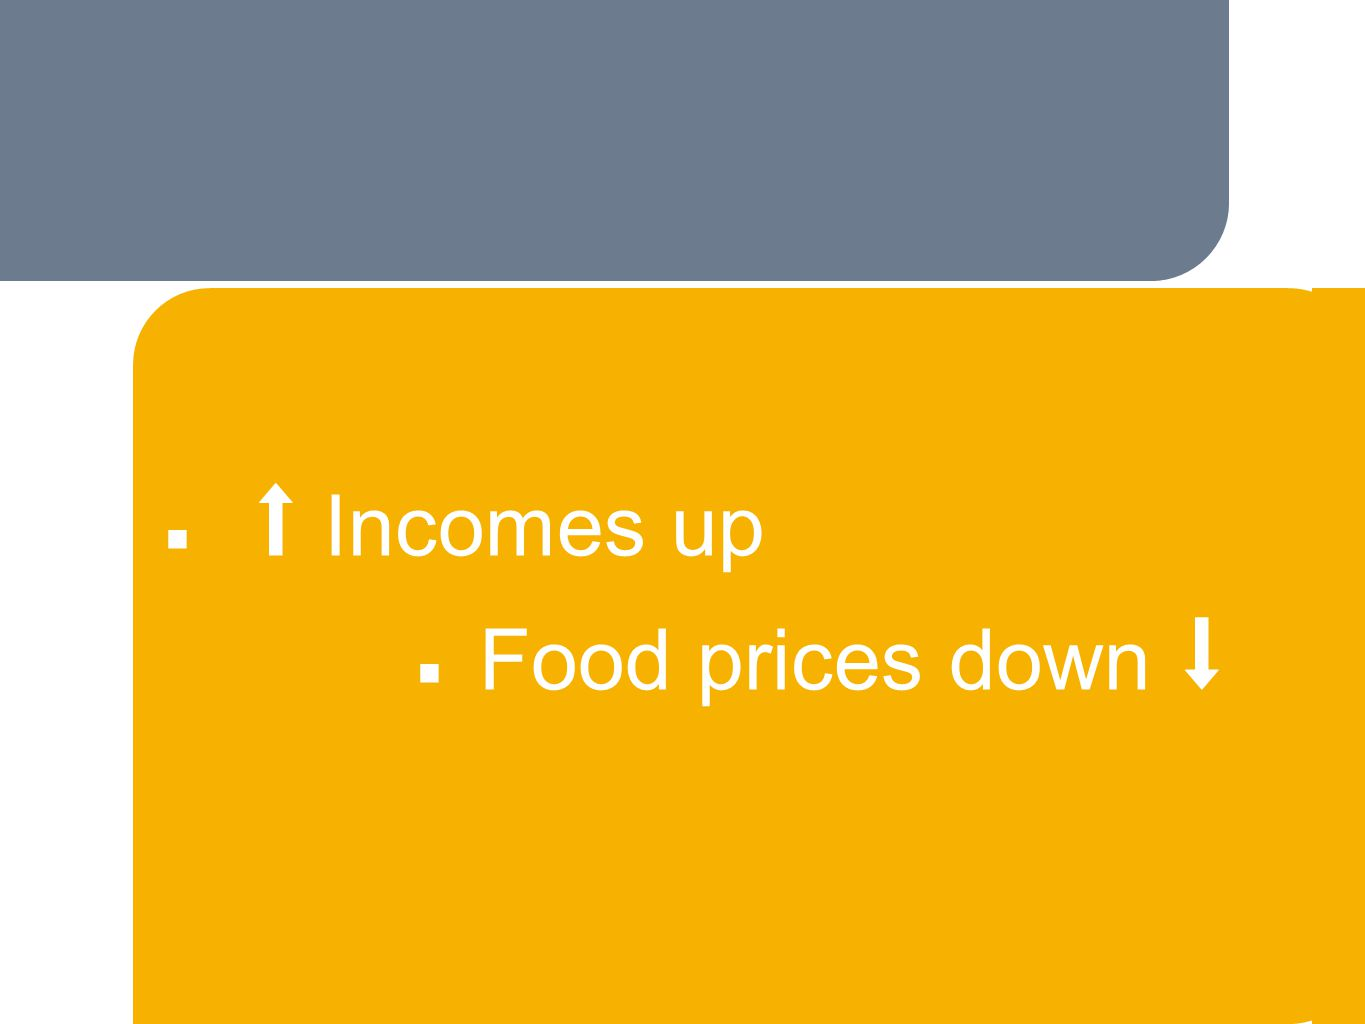 ■ Incomes up ■ Food prices down